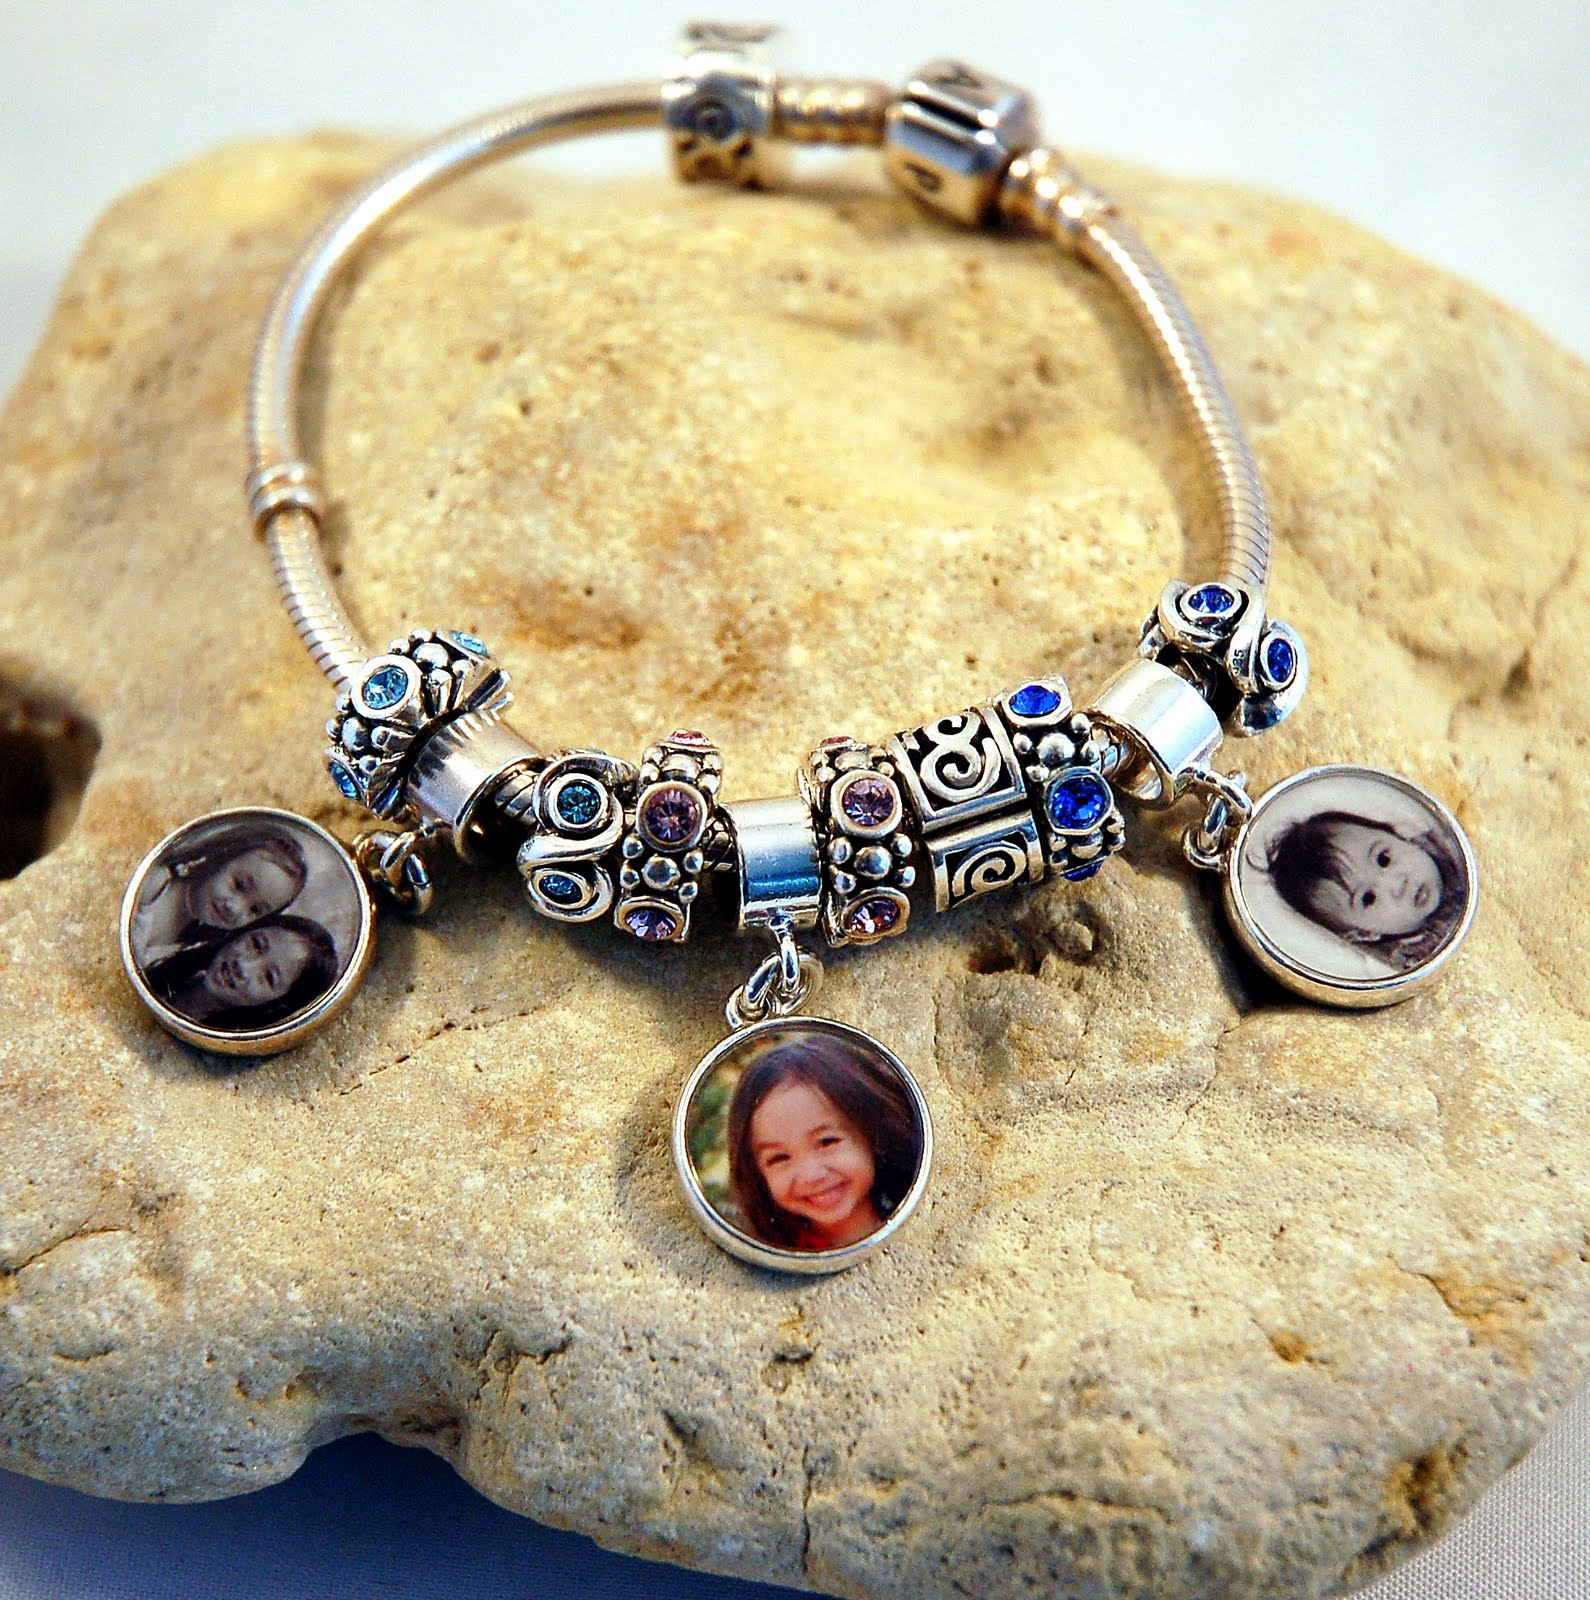 this celebrate with pandora charm pandorabracelet bracelet a cute pin graduation